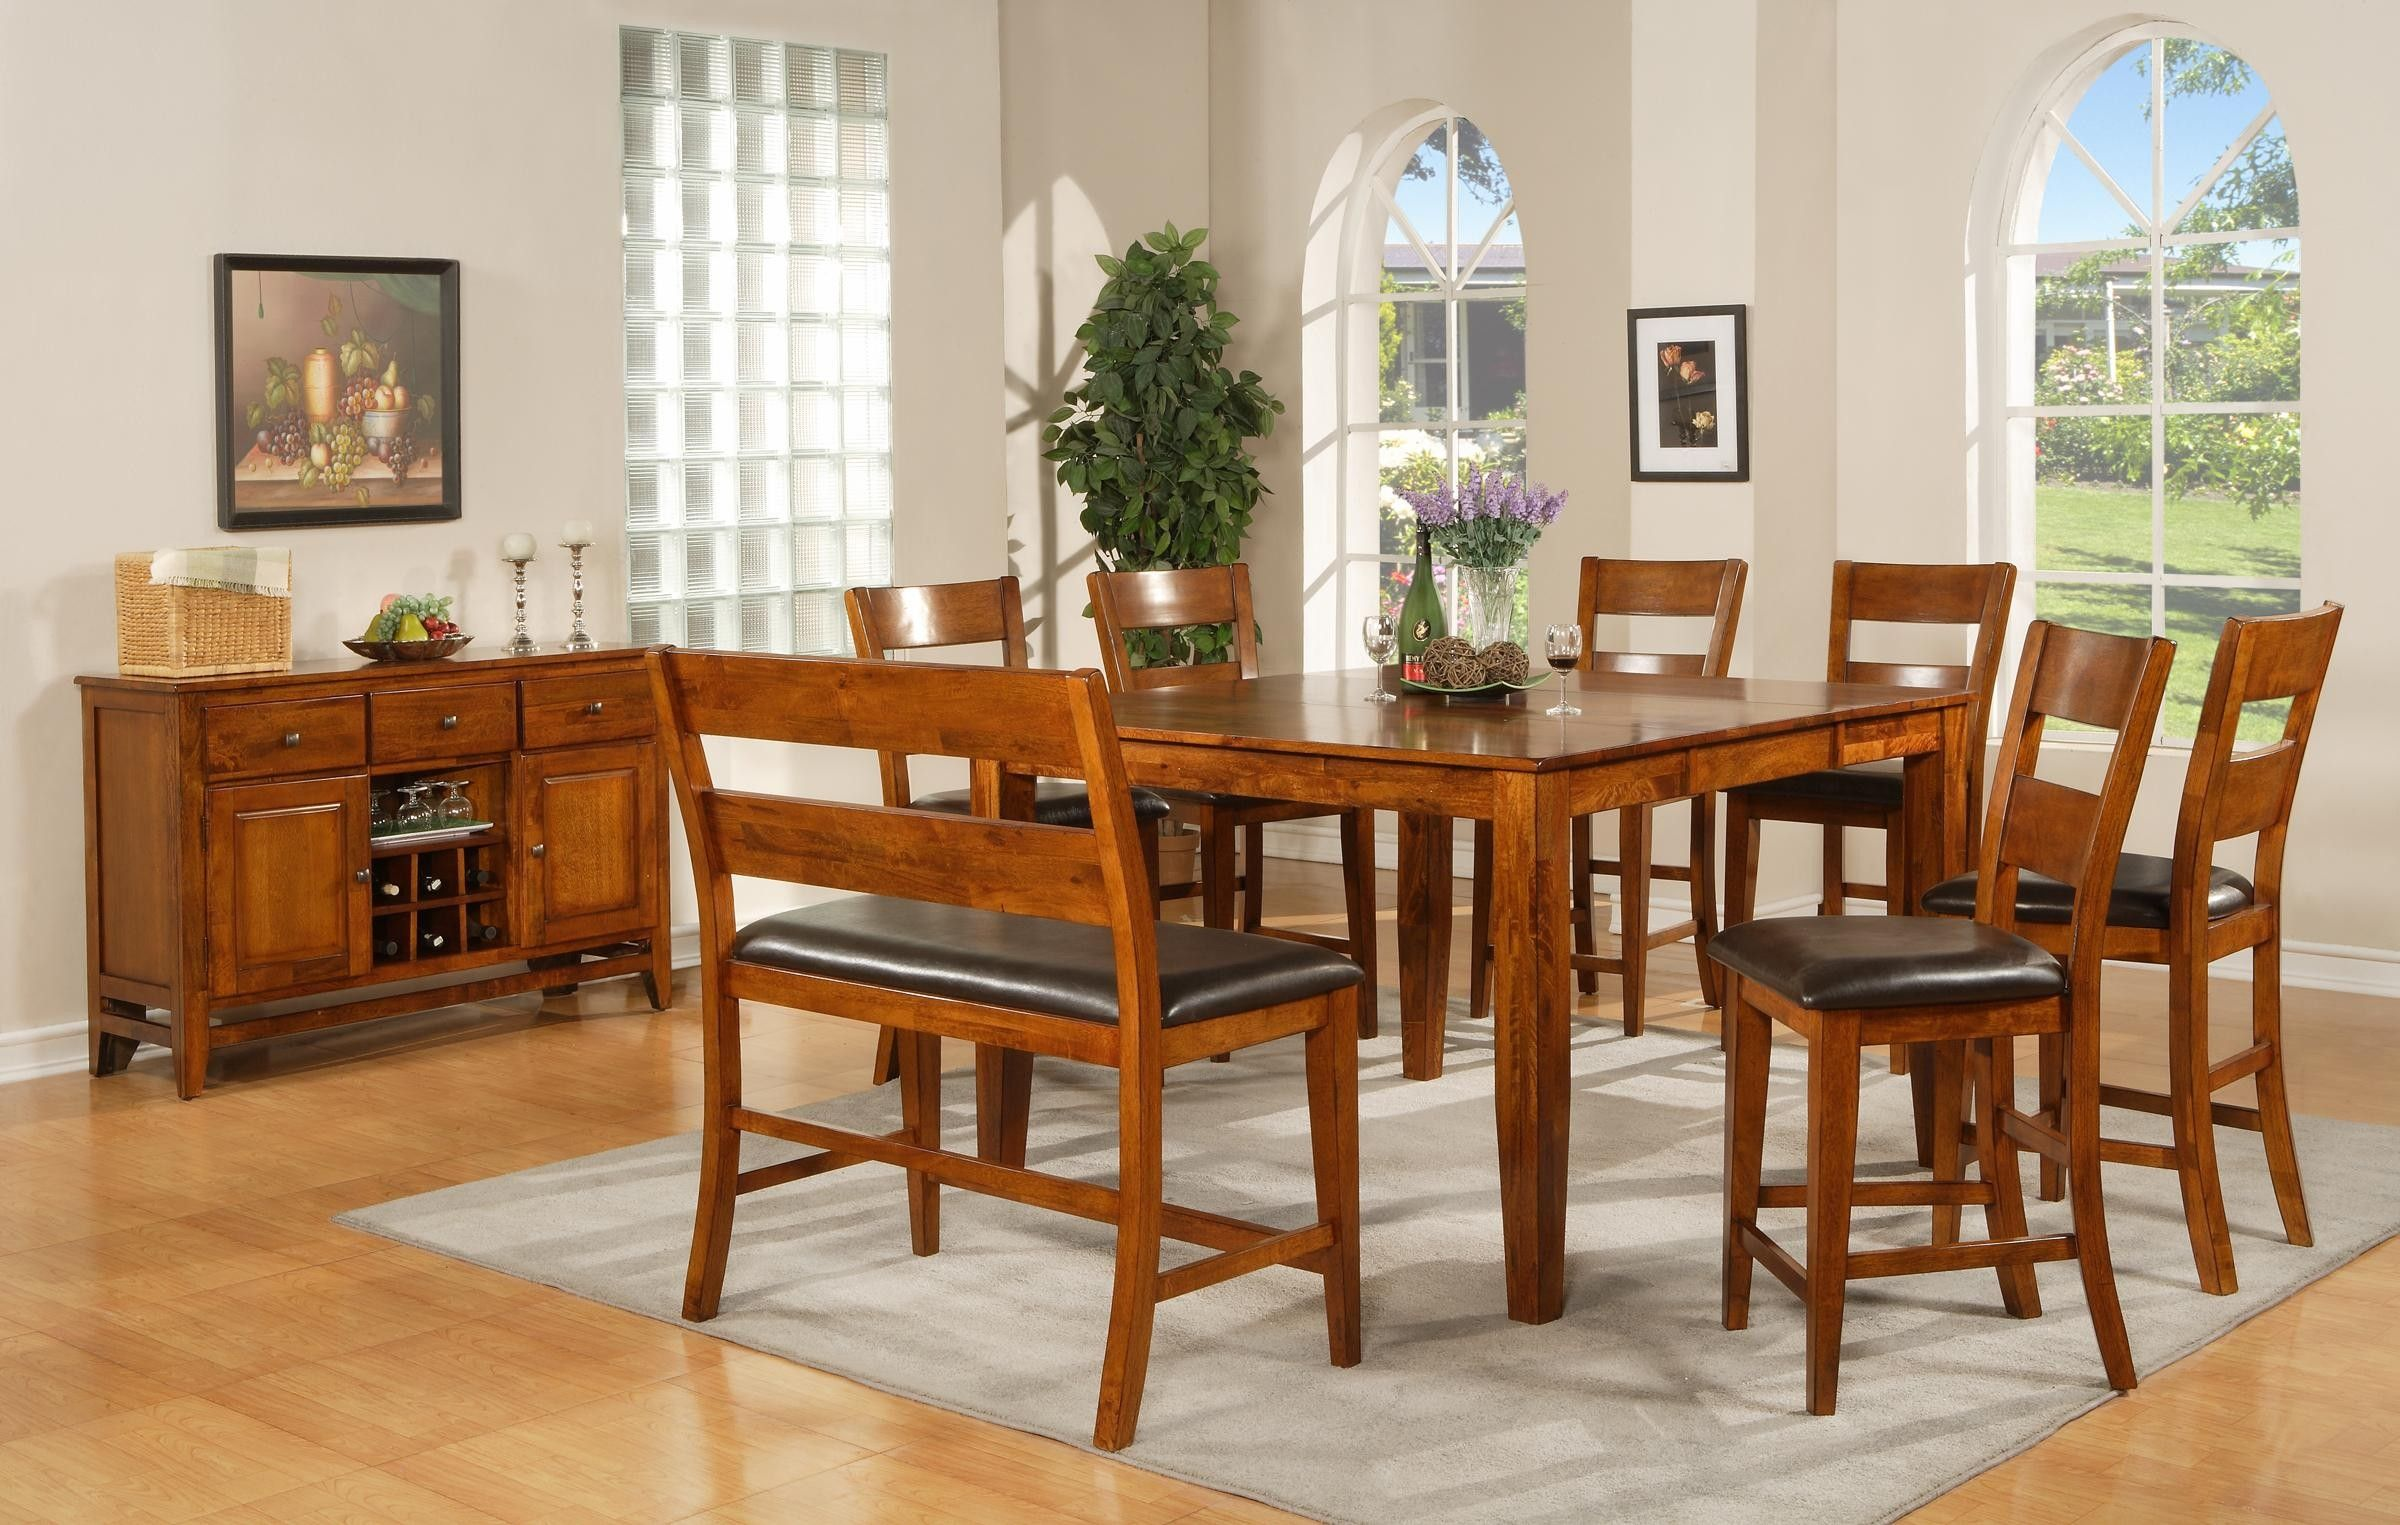 Awesome Wooden Dining Set With Benches Also Rectangular Gray Enchanting High Dining Room Table Decorating Inspiration